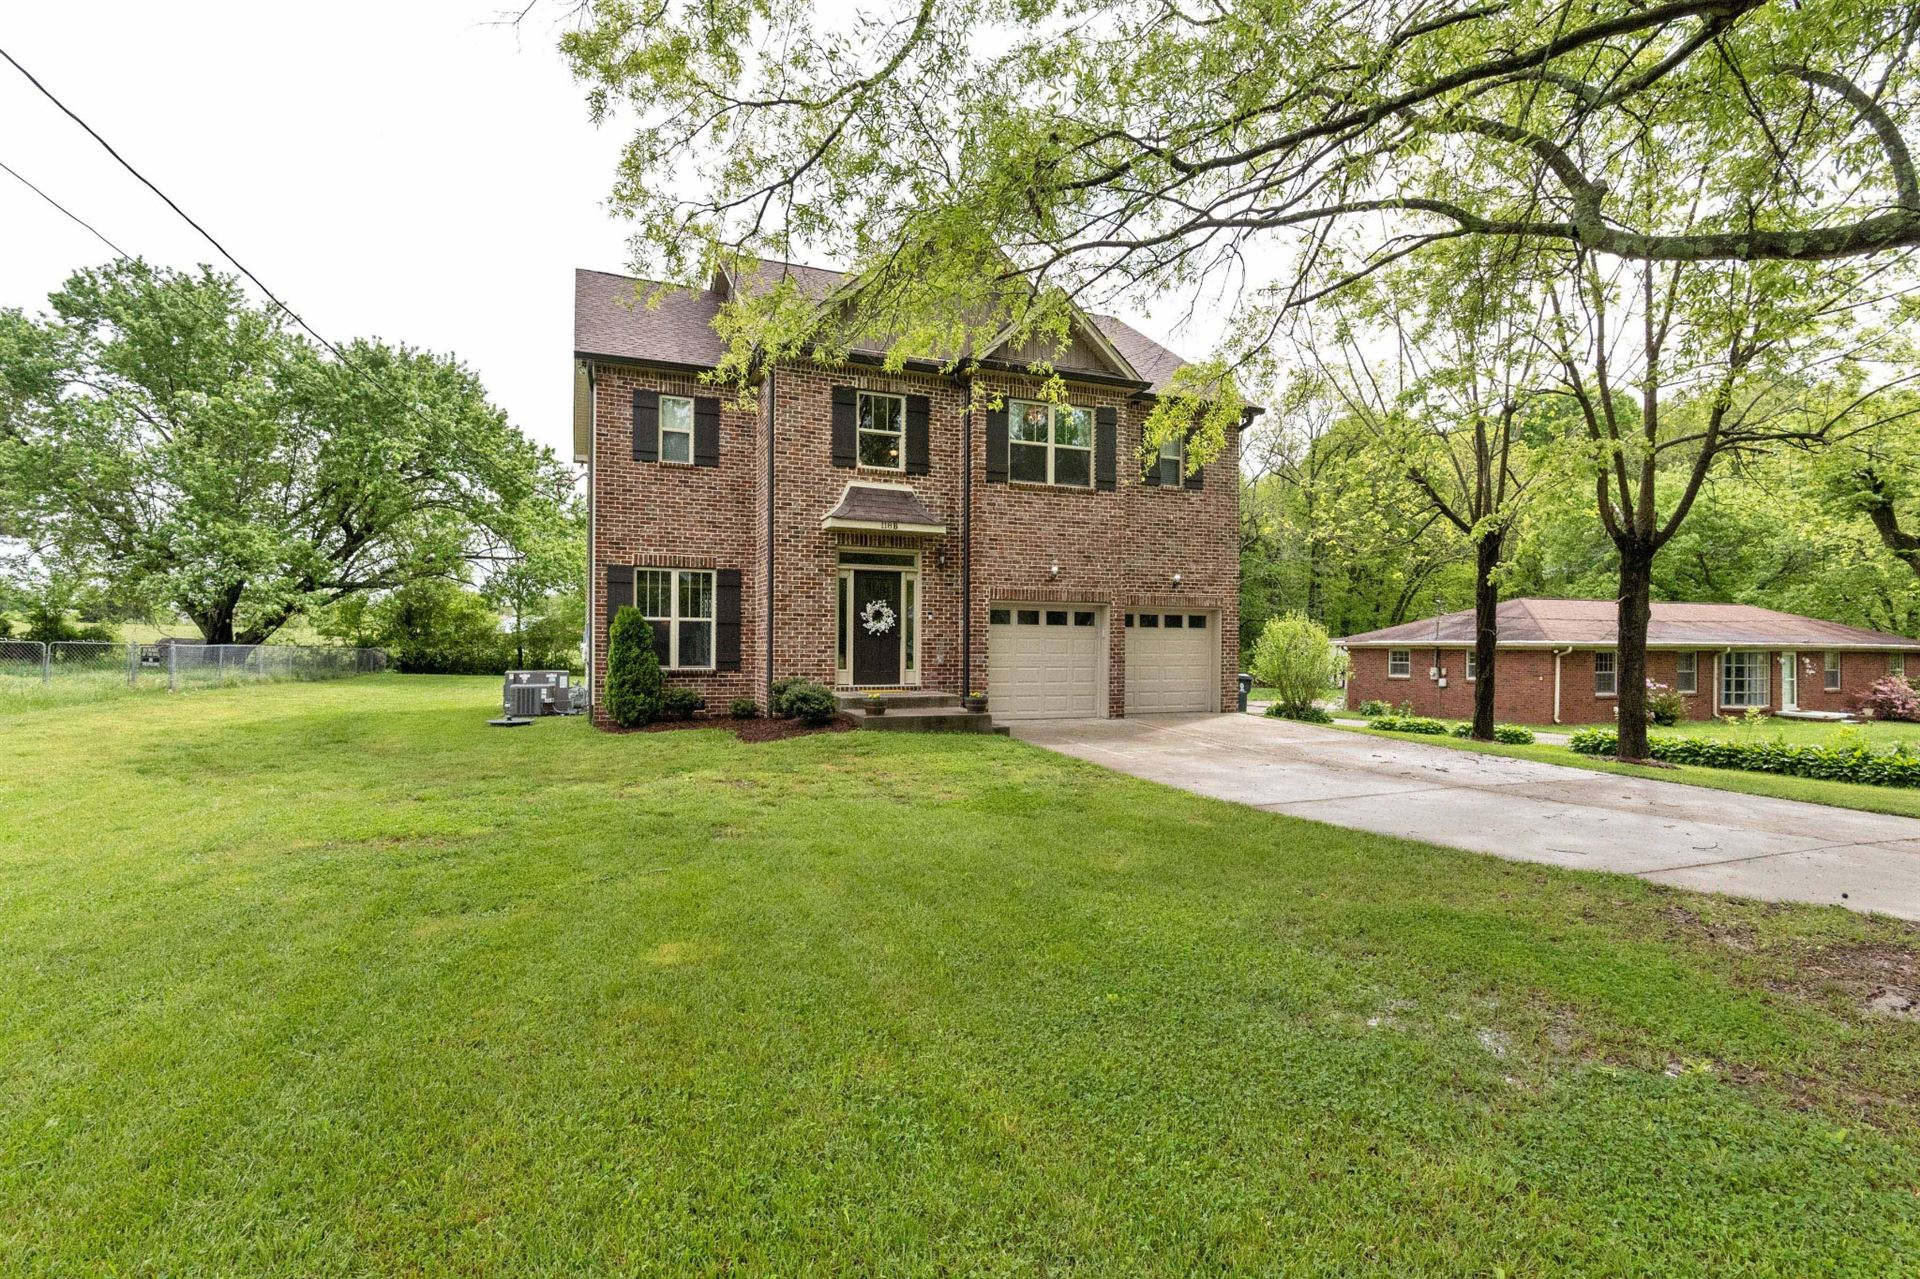 118B Brooklawn Dr, White House, TN 37188 - MLS#: 2250766